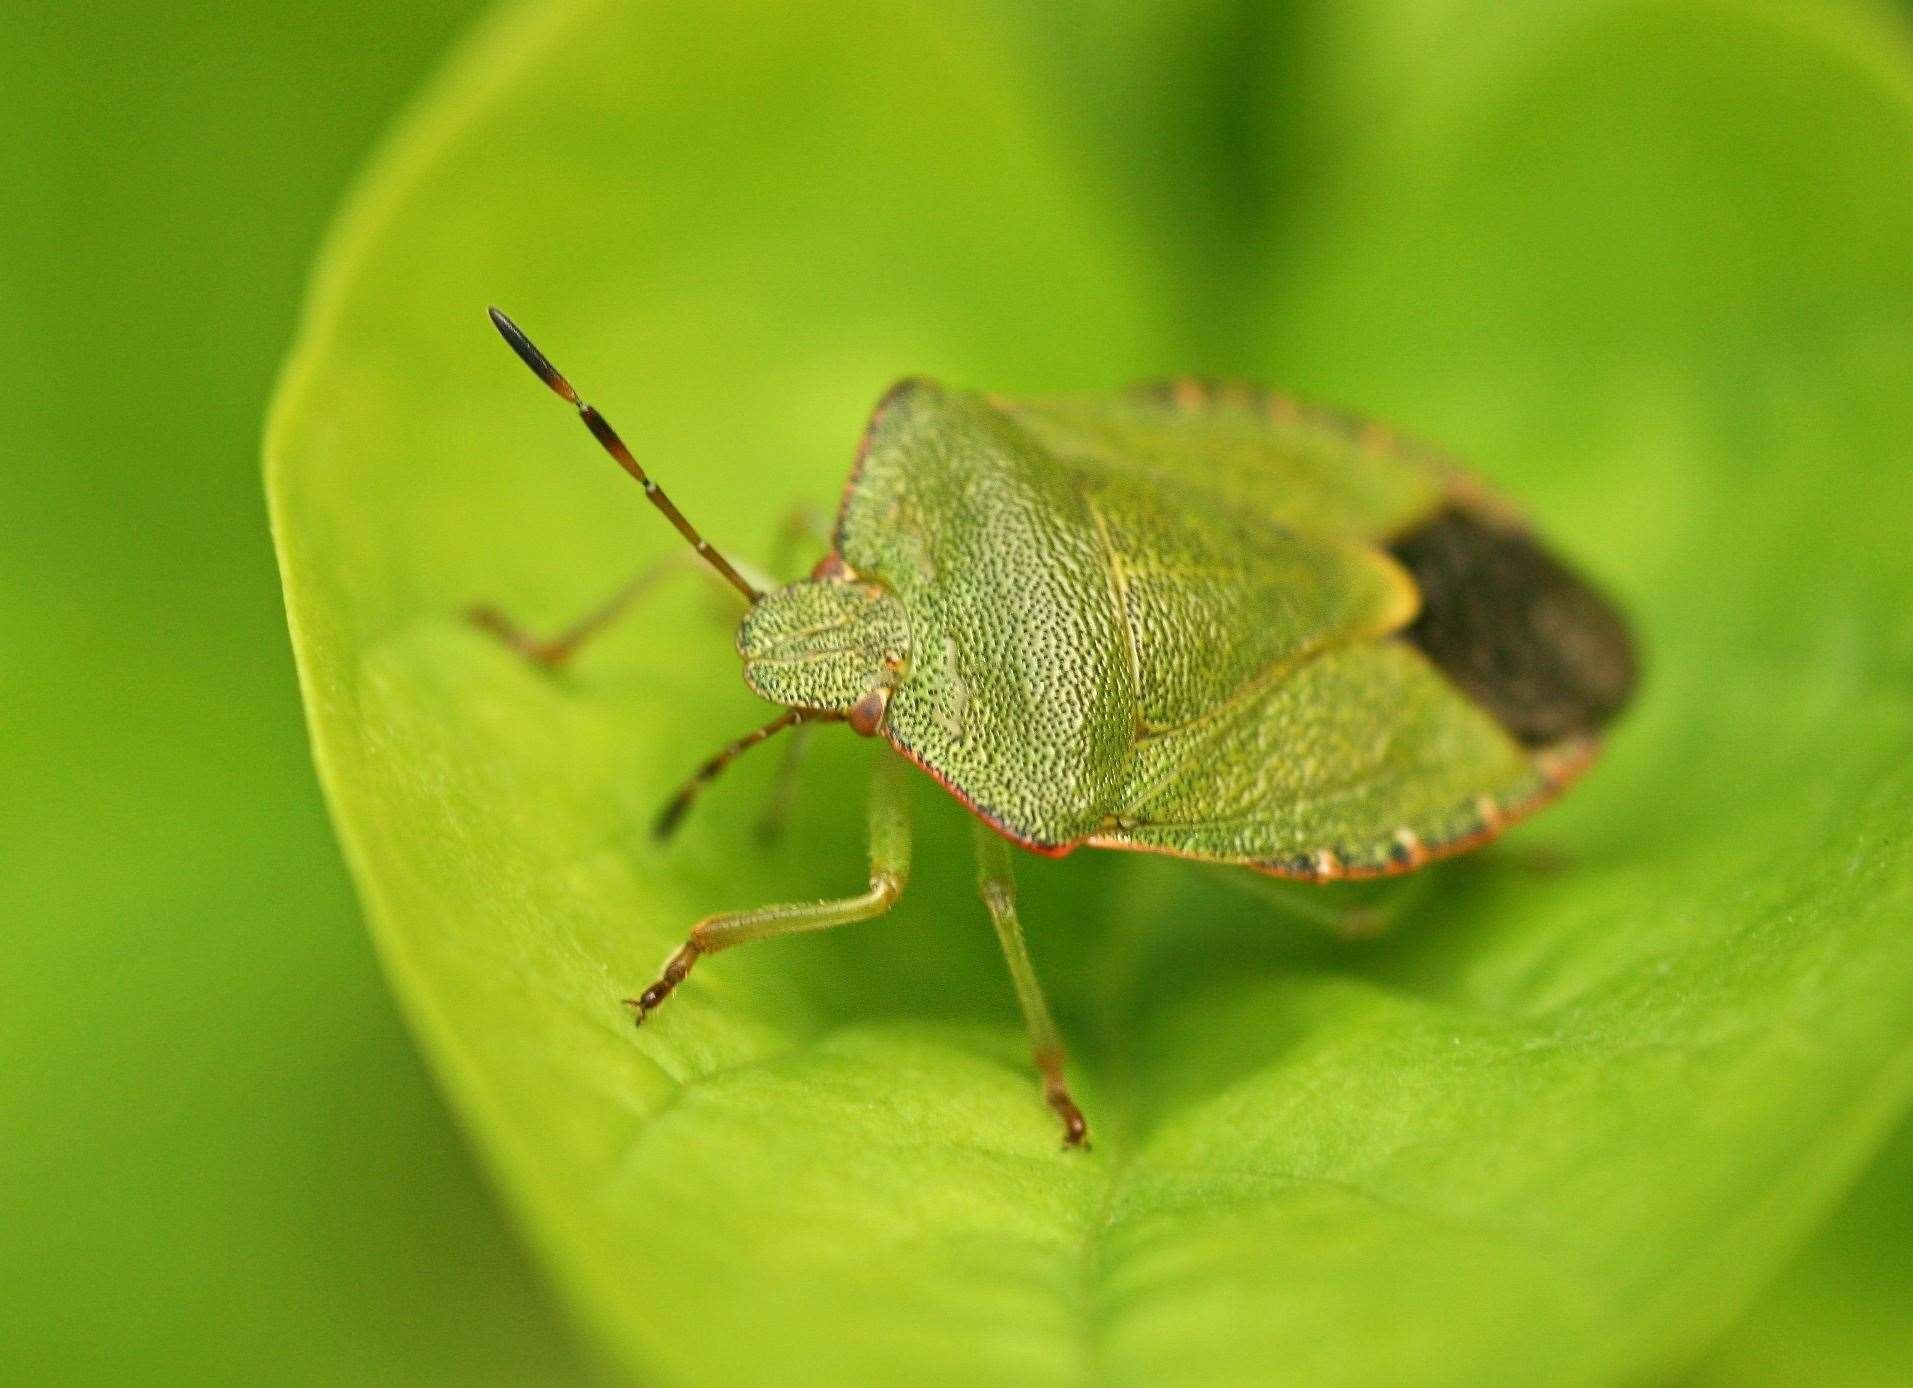 A green shield bug. Image by Rachel Scopes.